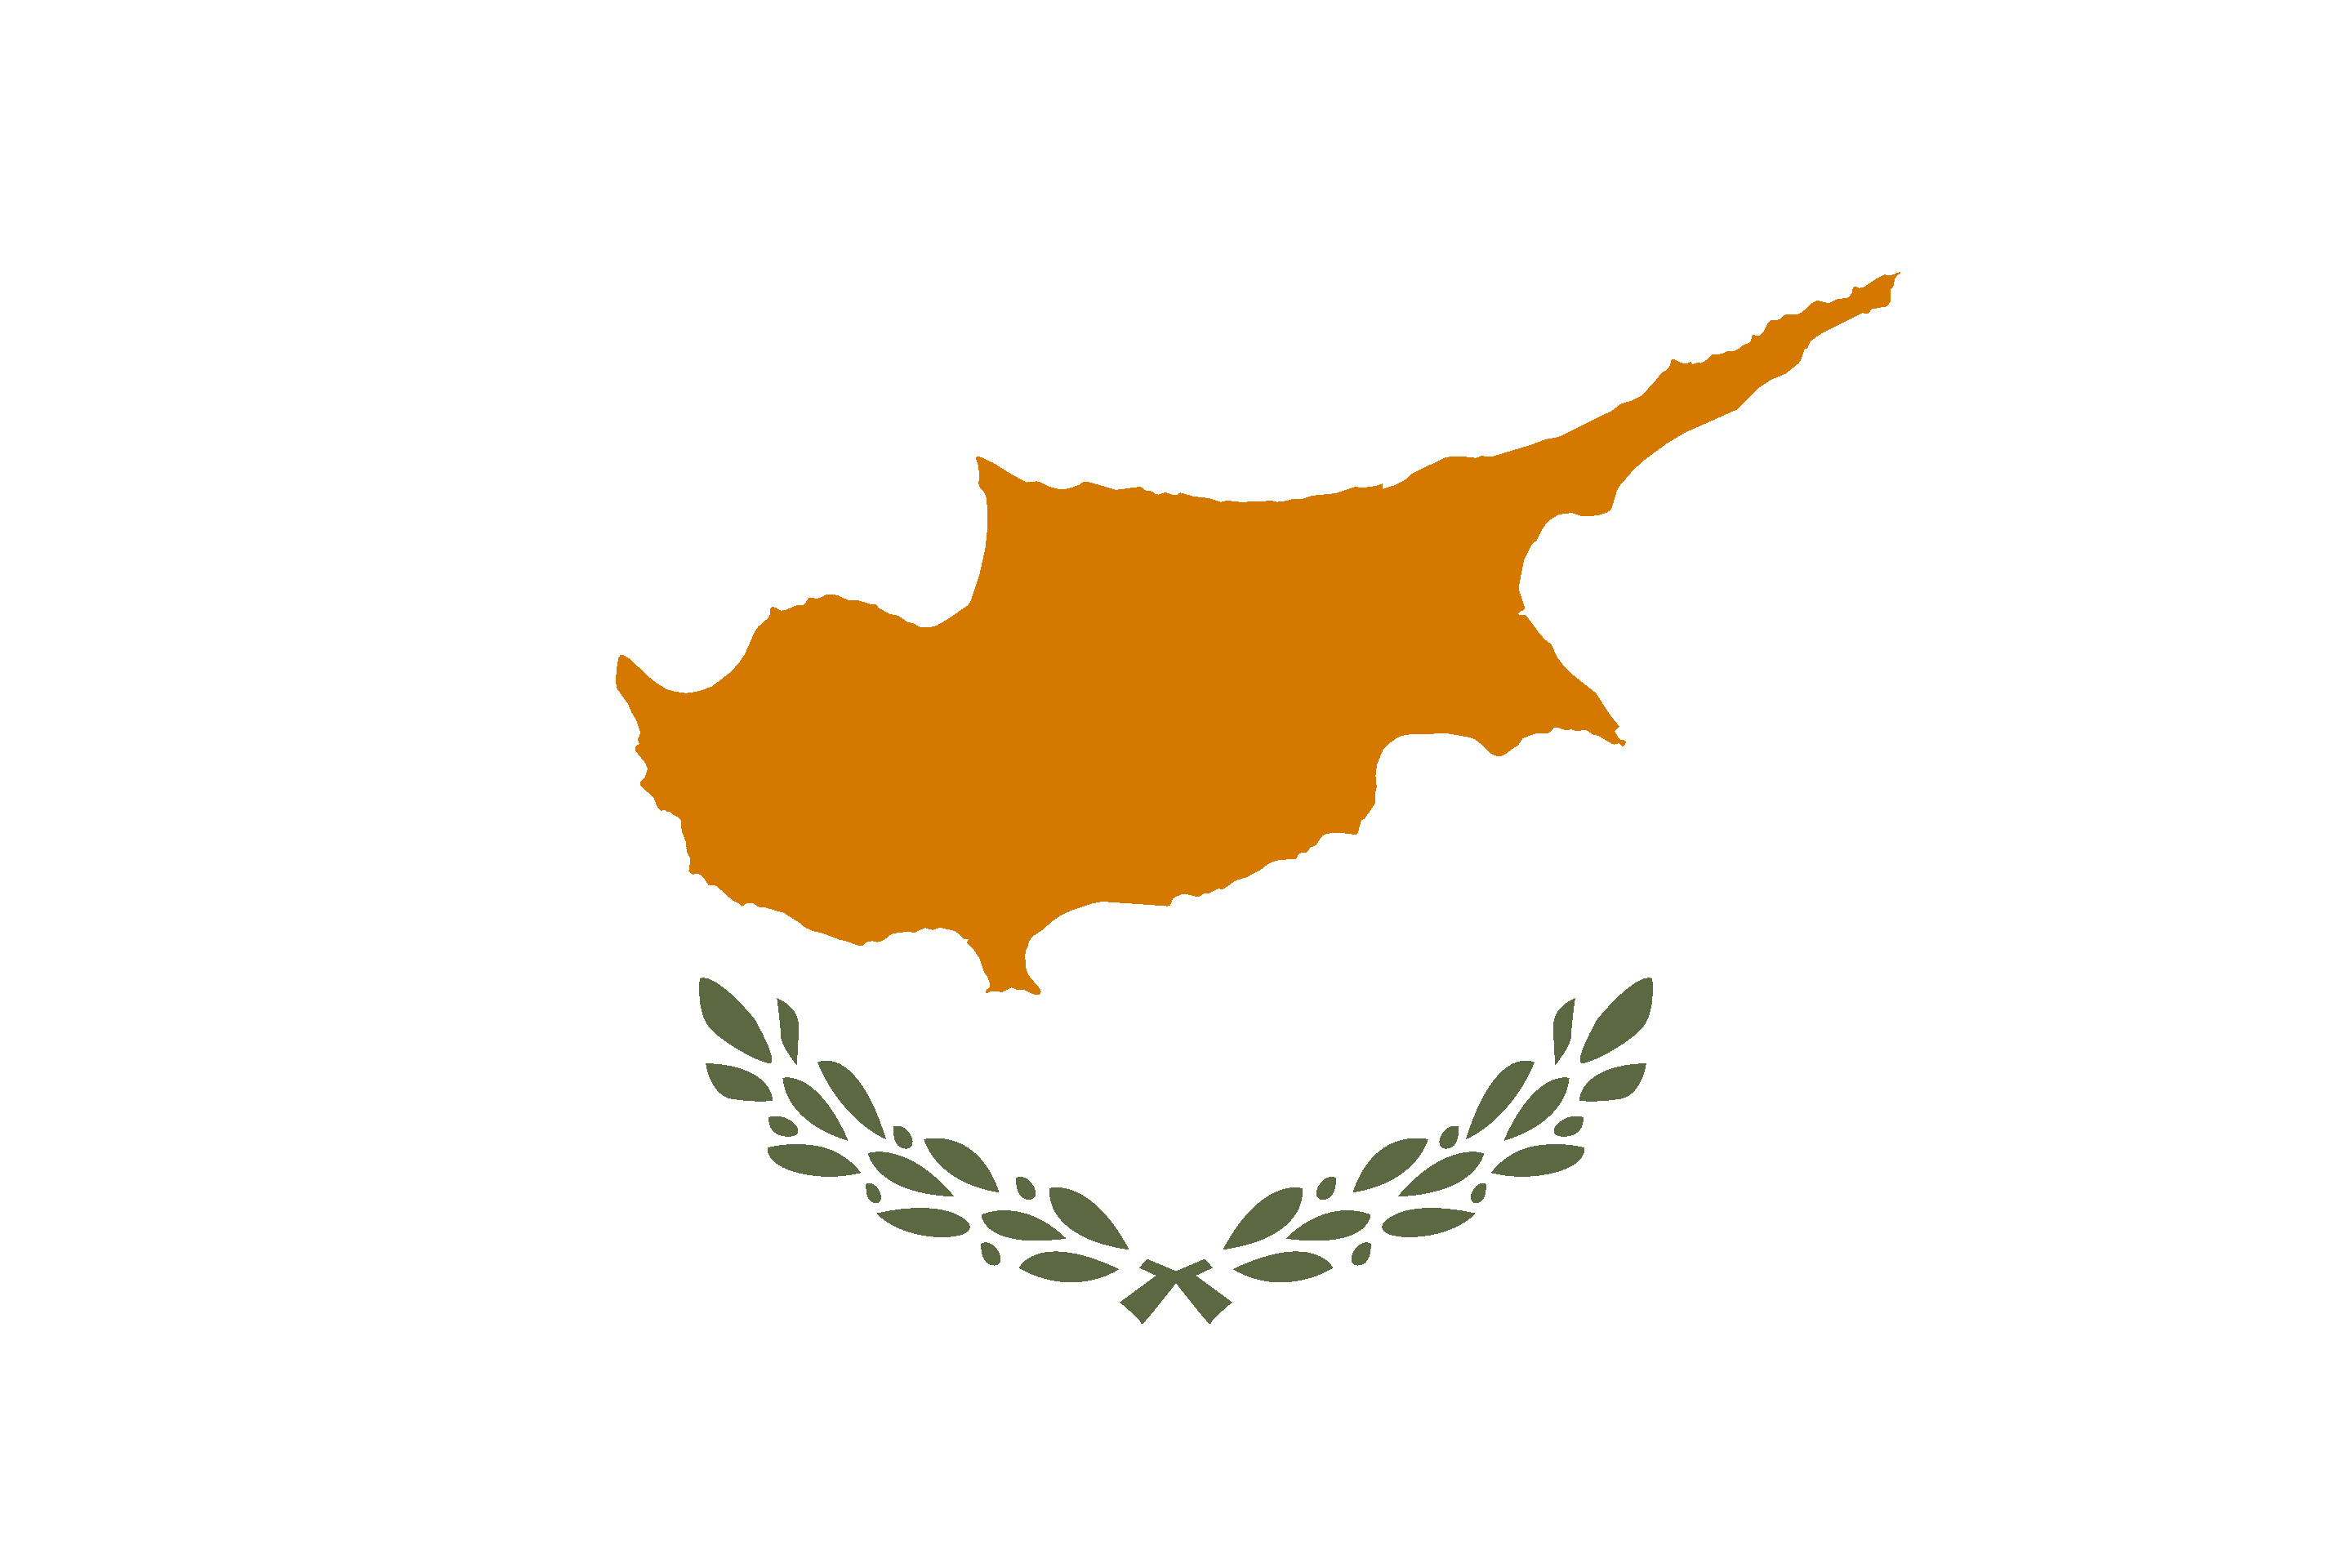 Cyprus Flag - Drone Laws In Cyprus